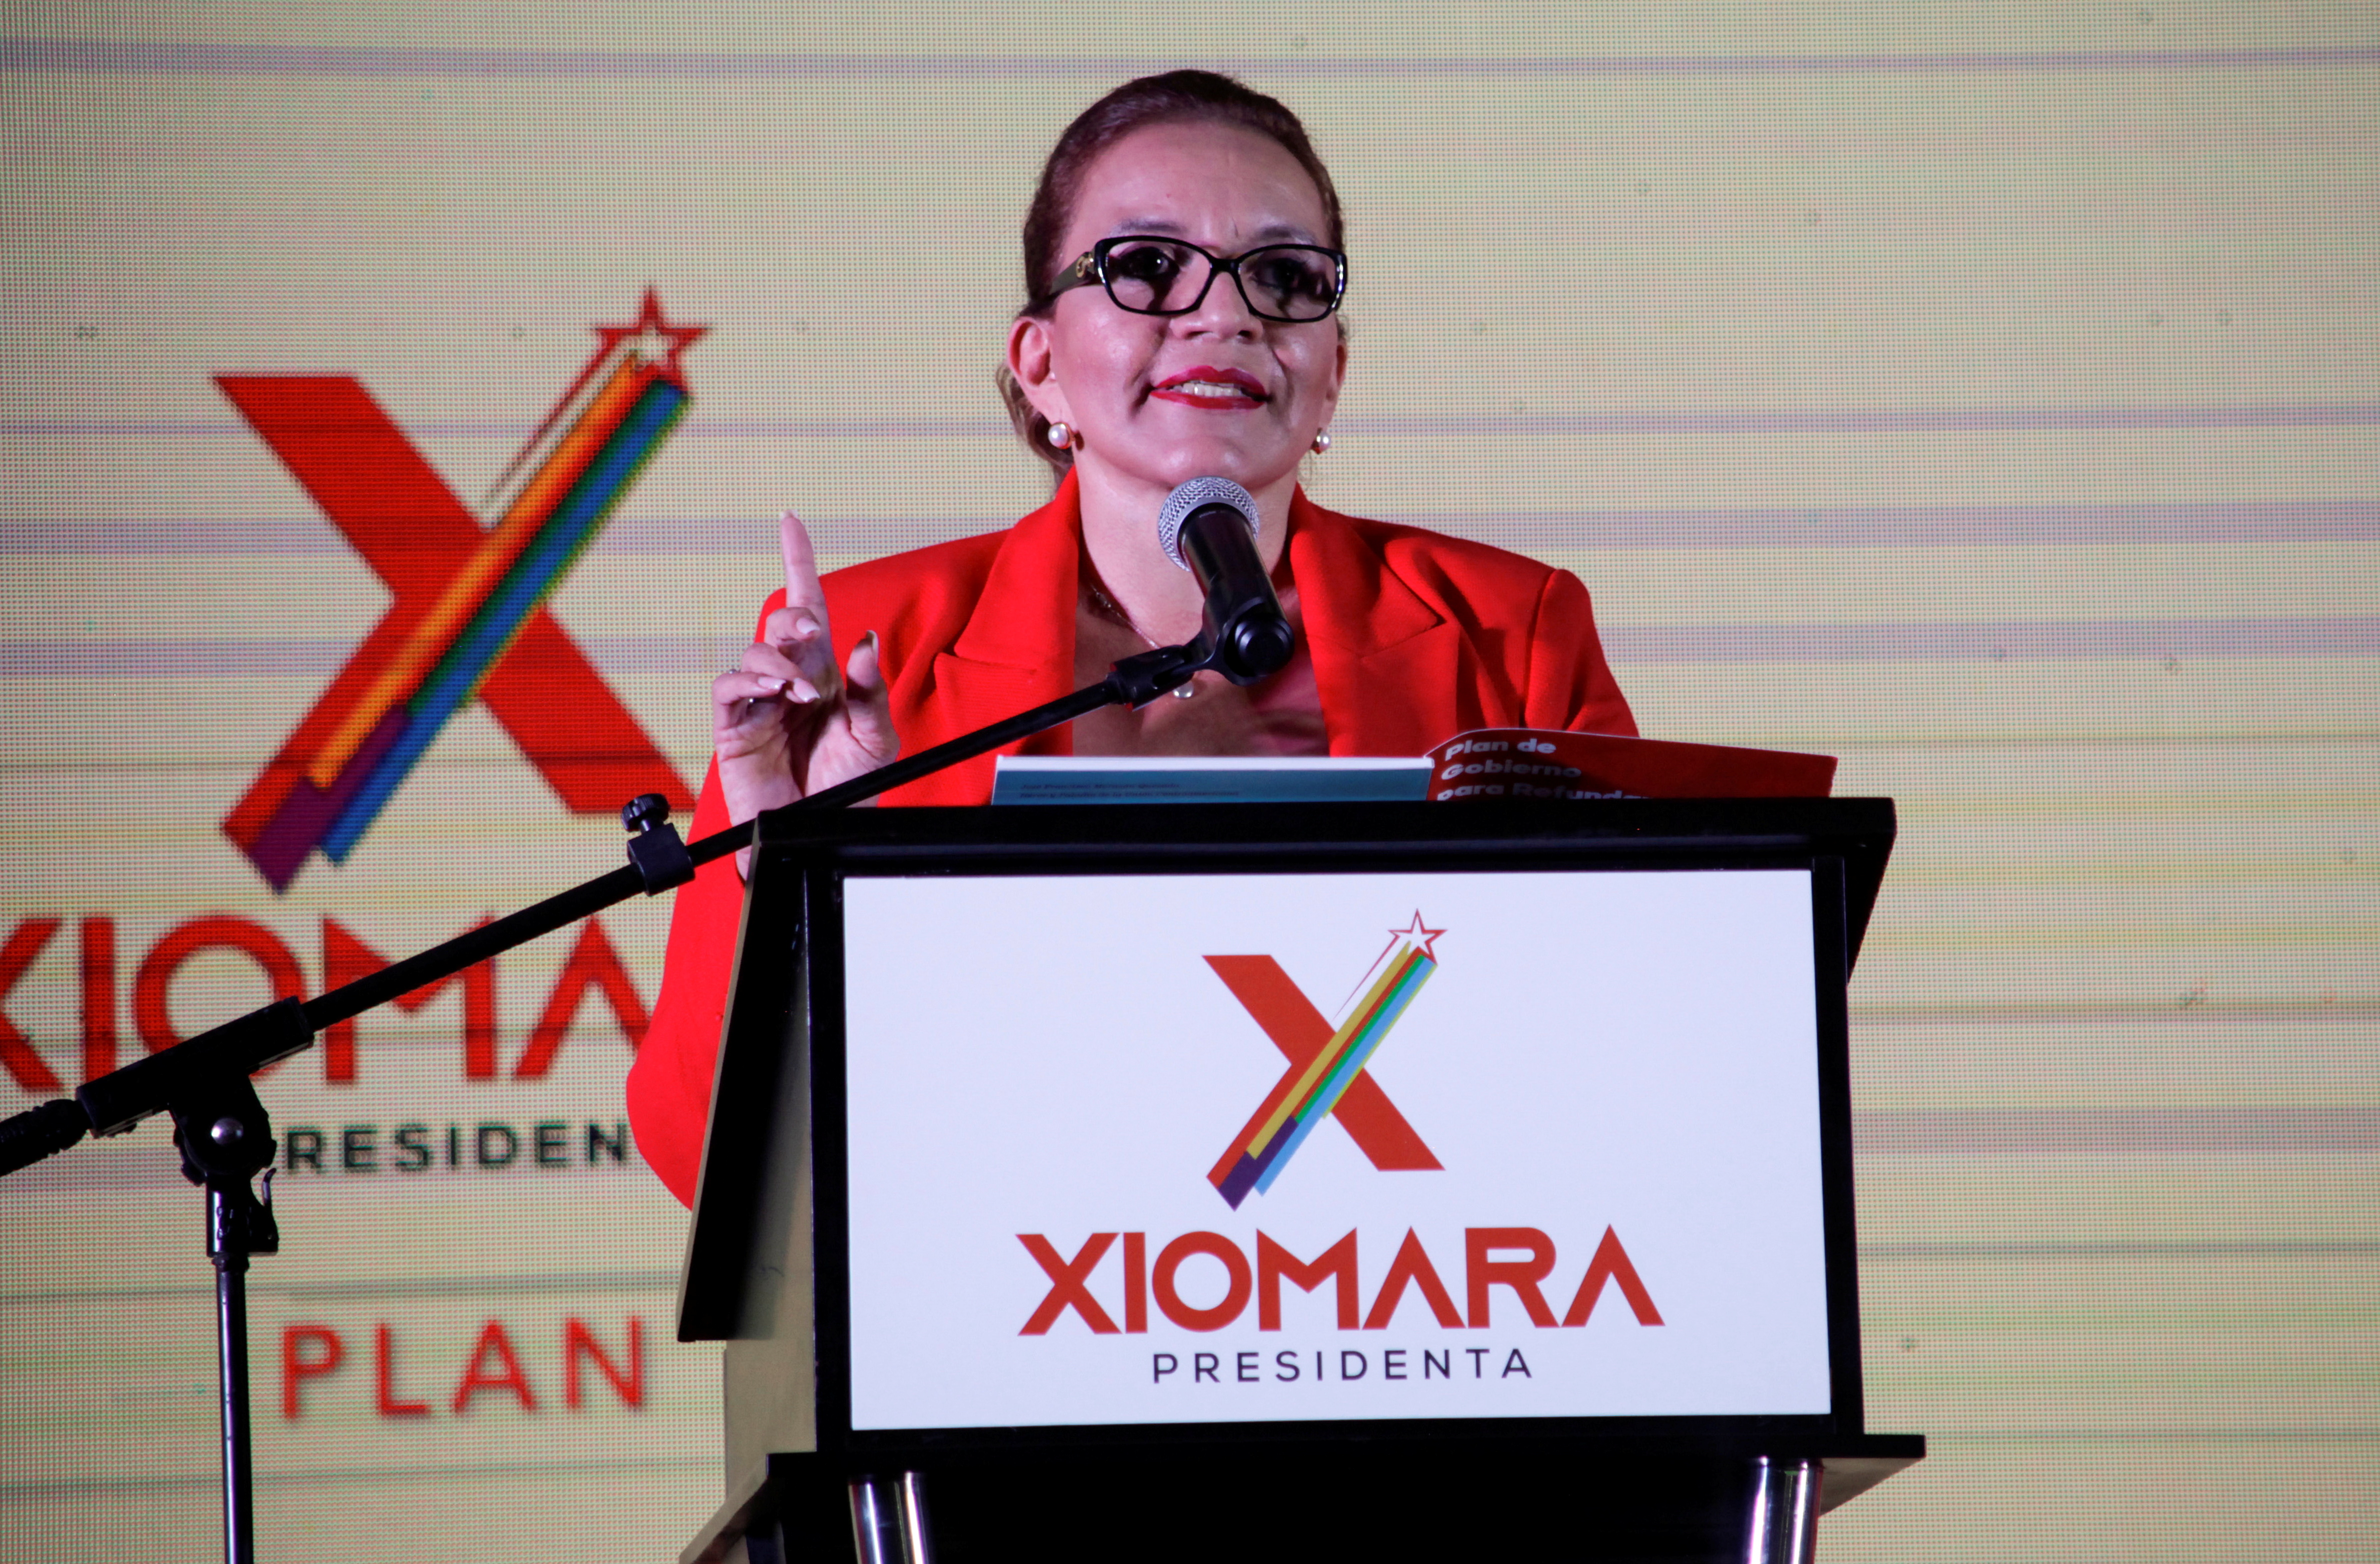 Xiomara Castro, presidential candidate for the opposition Libre Party, addresses supporters during a rally to present her campaign program ahead of the November 28 election, in Tegucigalpa, Honduras September 5, 2021. REUTERS/Fredy Rodriguez